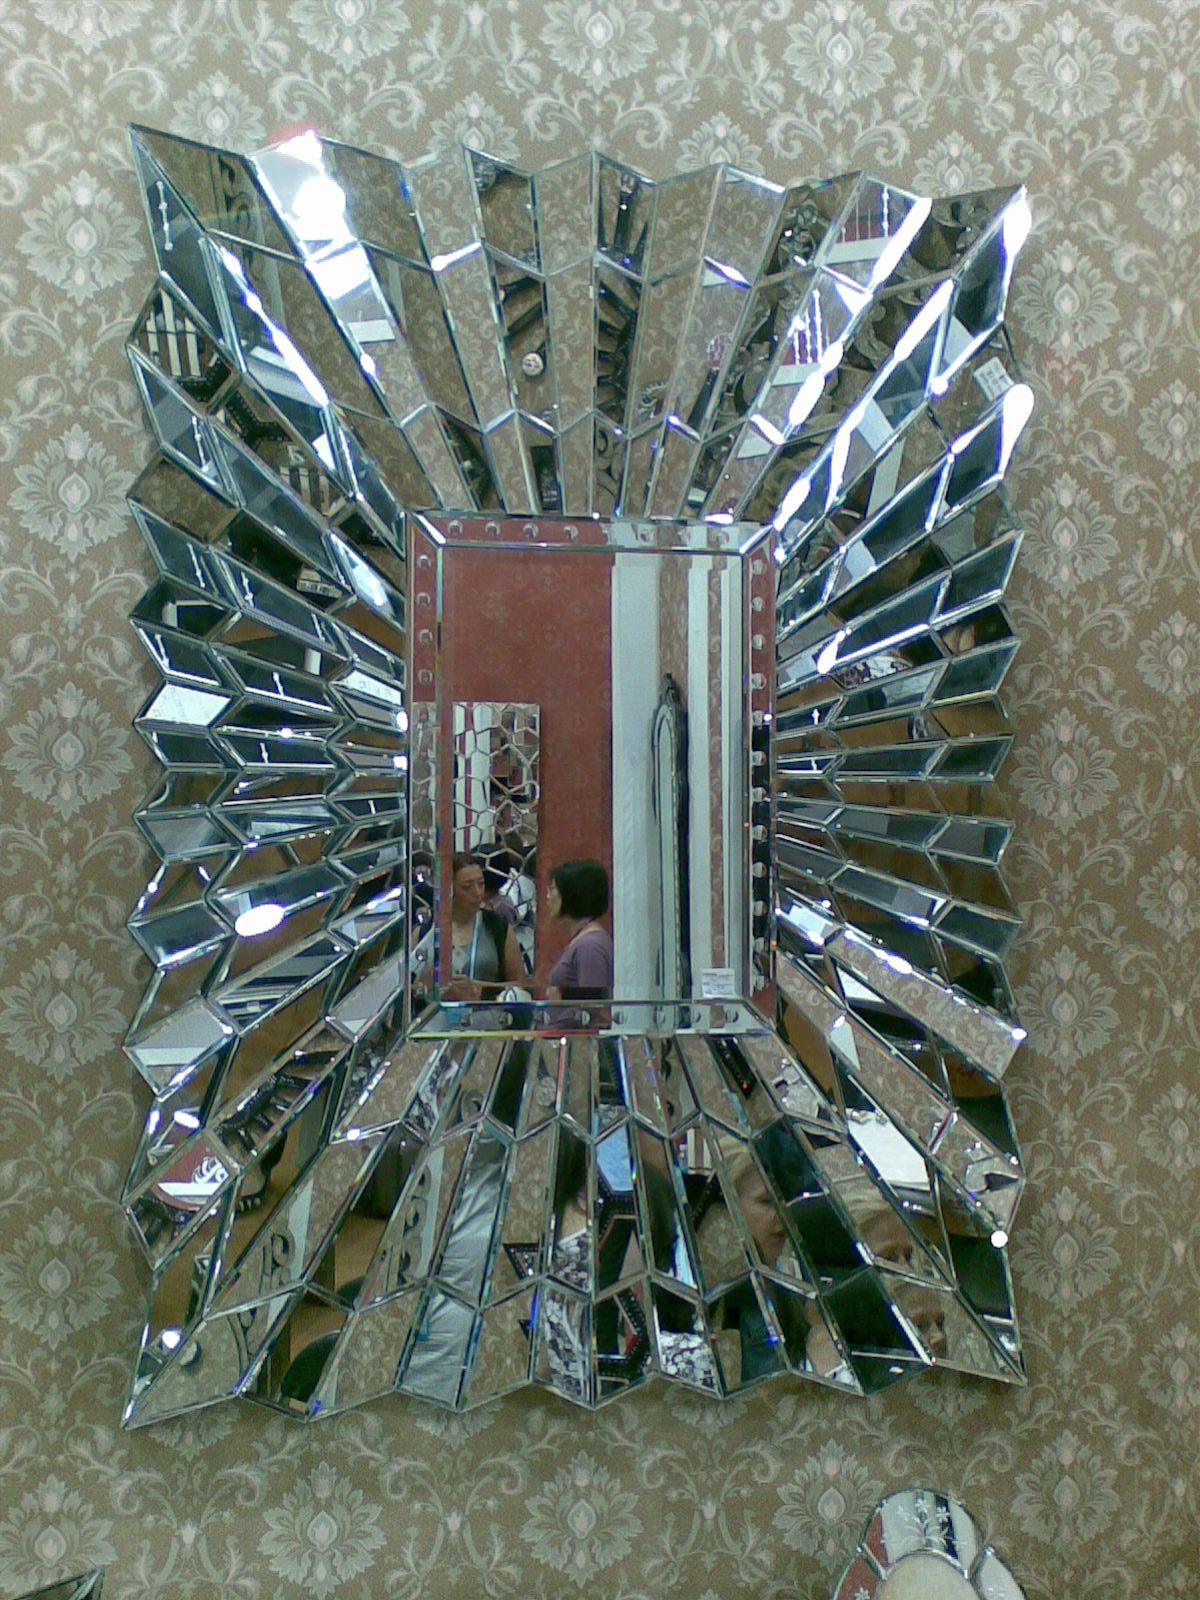 Amazing Mirror Beautifully Crafted Large Bevelled Wall Mirror With Individual Pieces Of Glass Layered At Angles Whic Beautiful Mirrors Mirrors Unusual Mirror